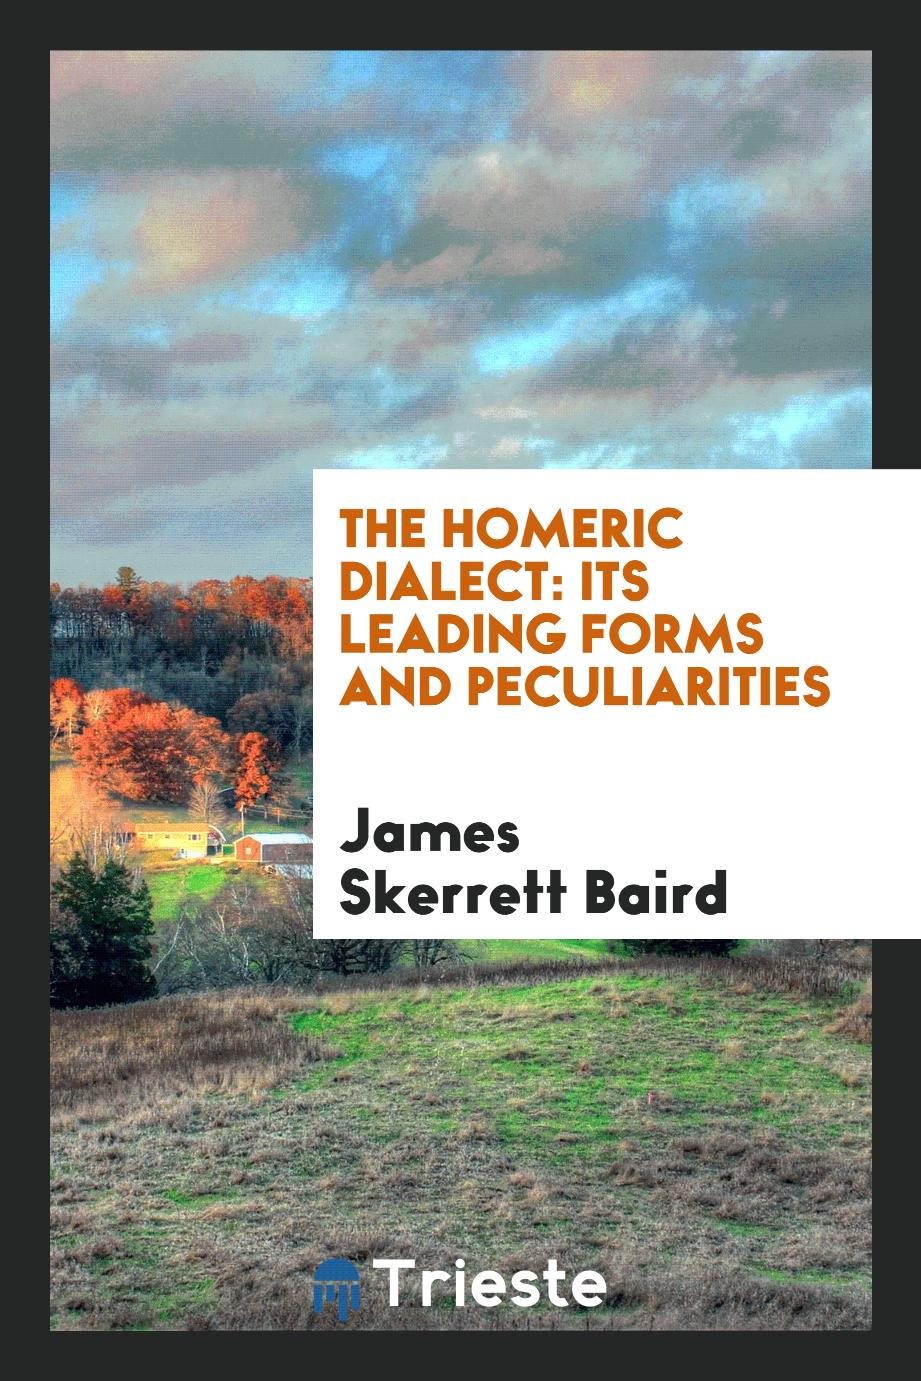 The homeric dialect: its leading forms and peculiarities